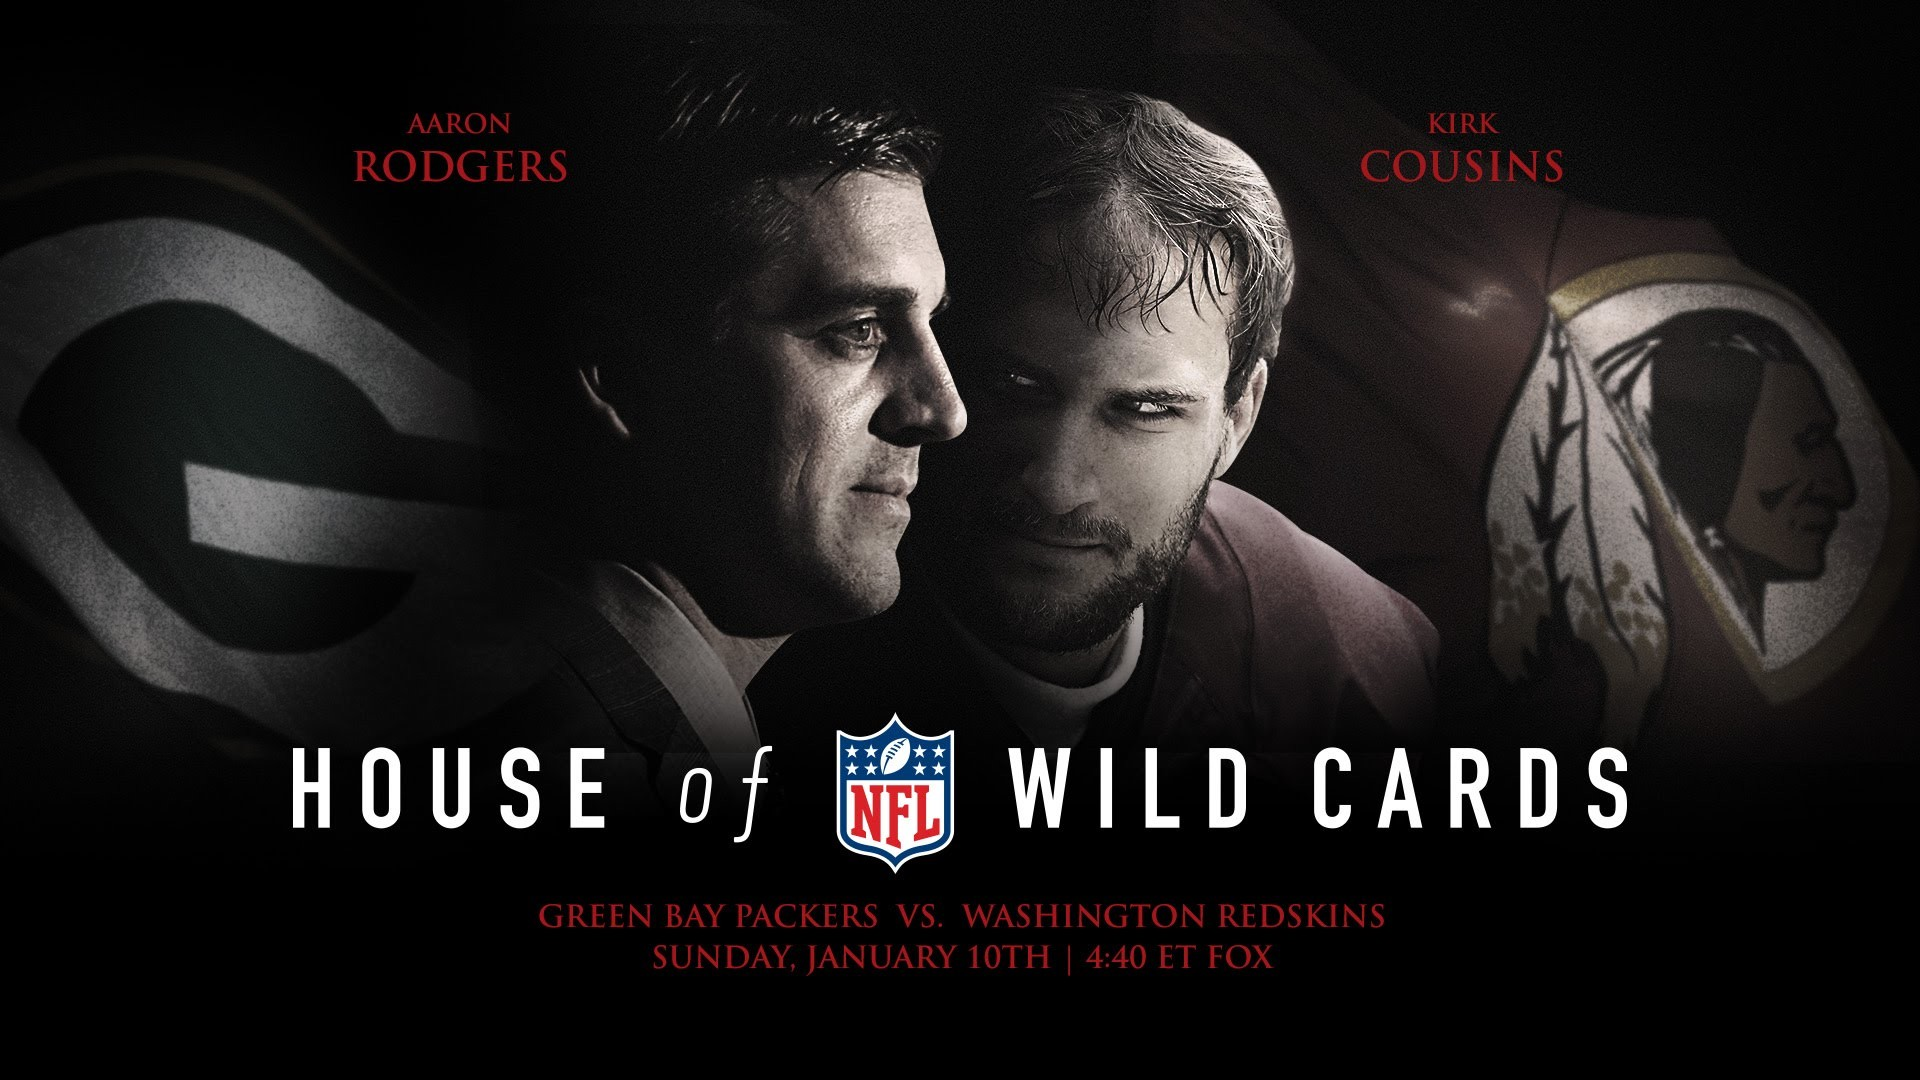 1920x1080 House of Wild Cards: Packers vs. Redskins Wild Card Weekend Movie Trailer |  NFL - YouTube